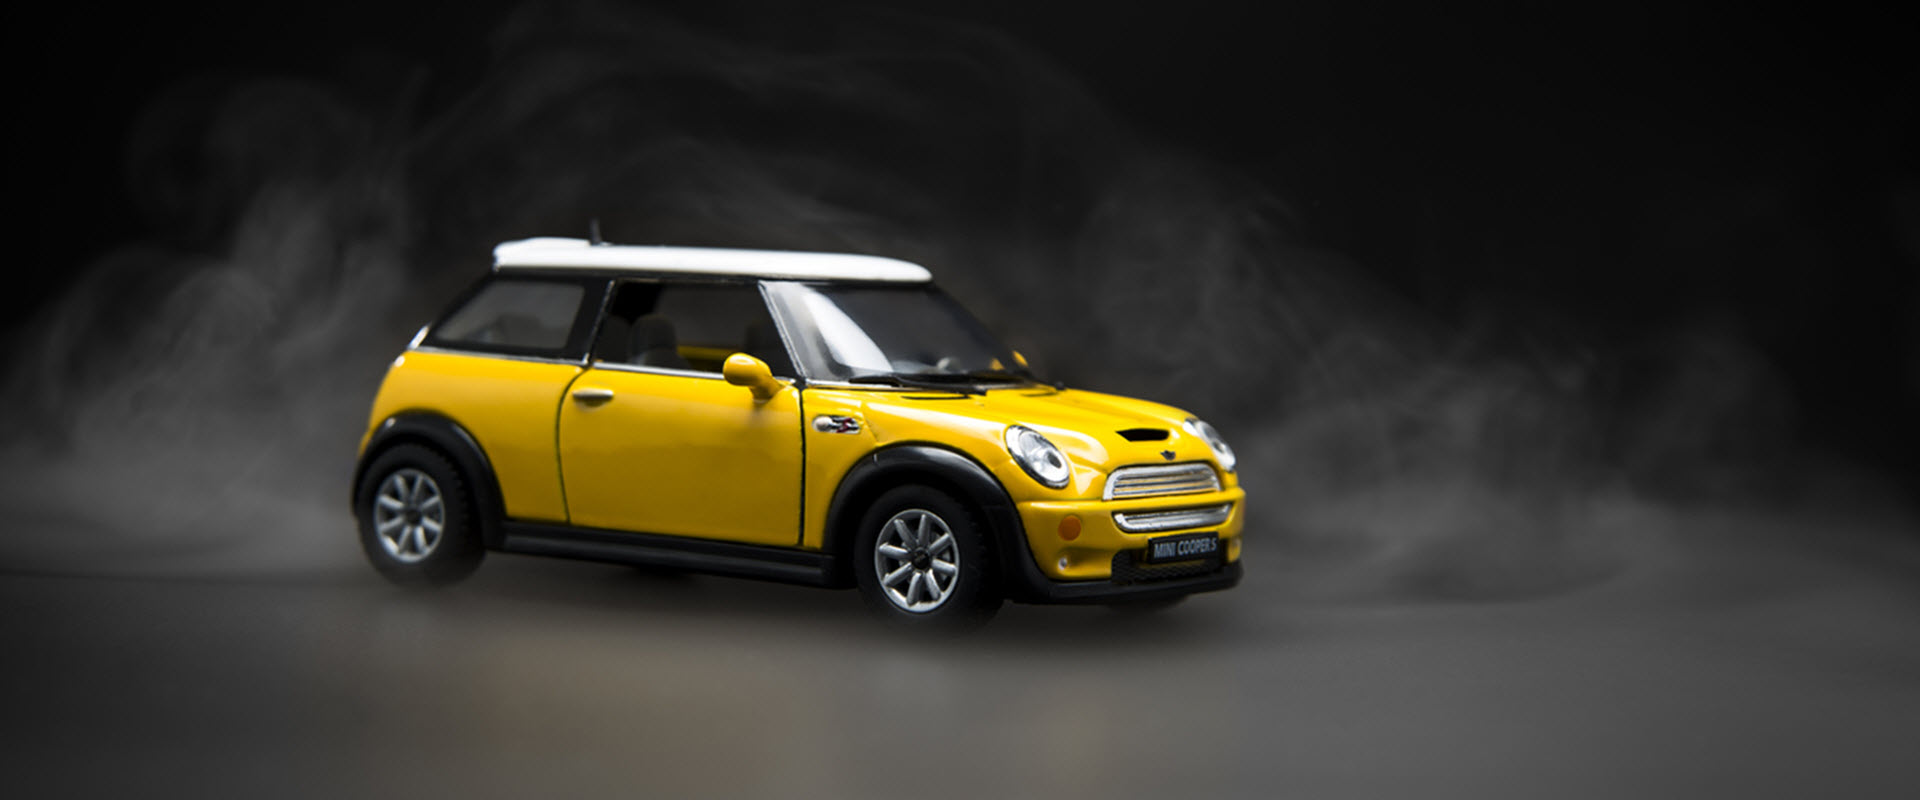 Are You Experiencing Acceleration Stumbling in Your MINI